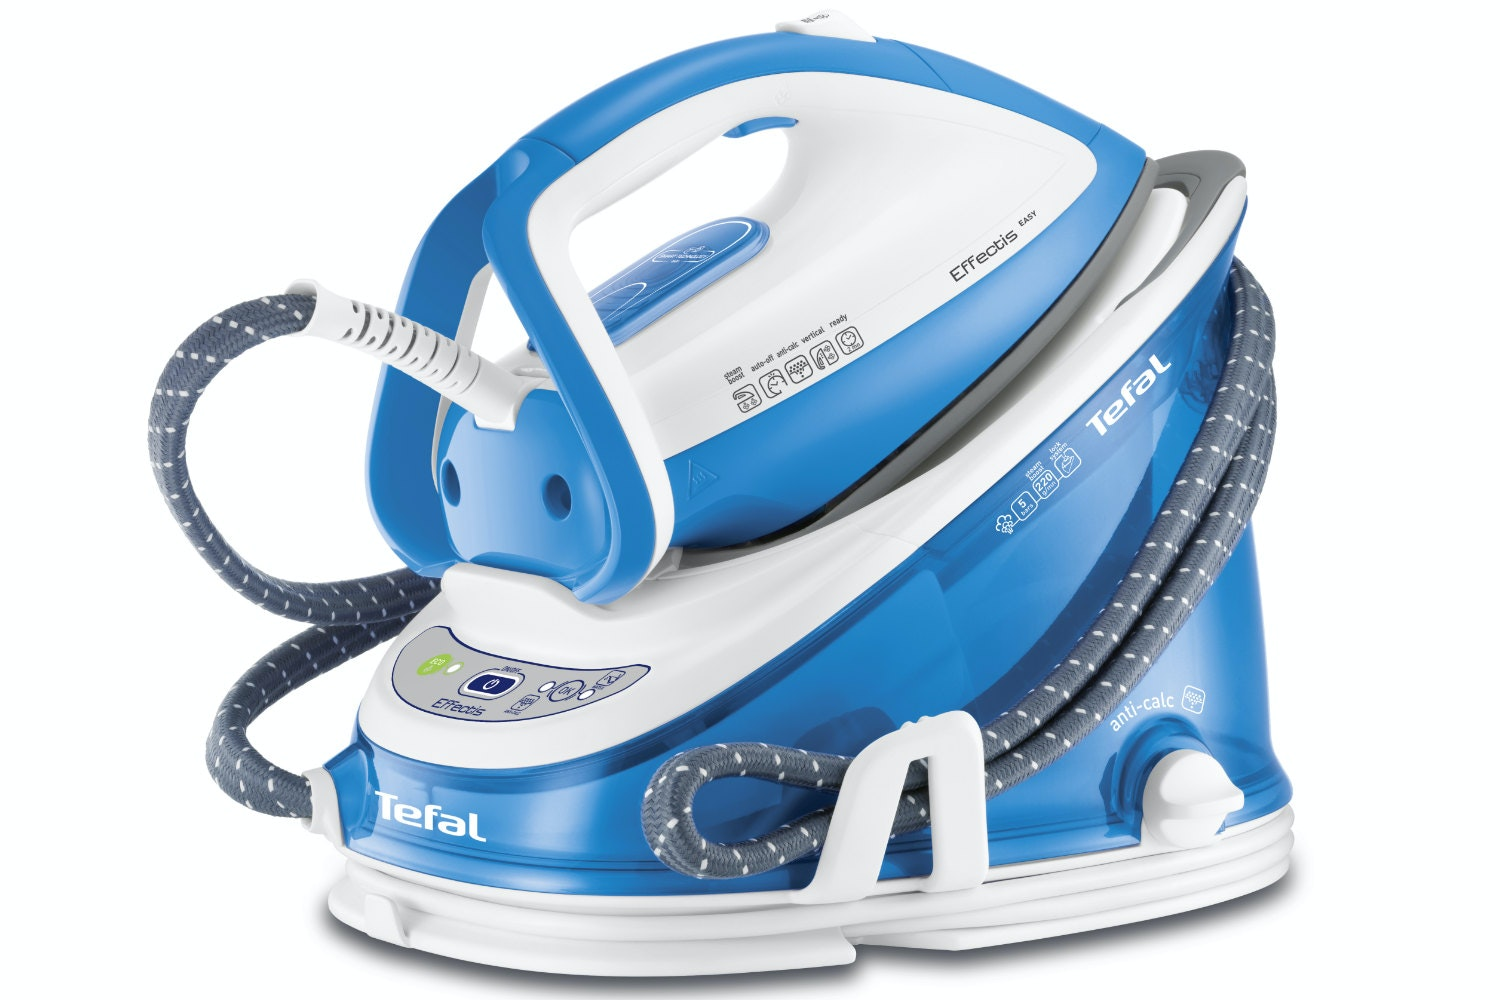 Tefal Effectis Steam Generator Iron GV676090